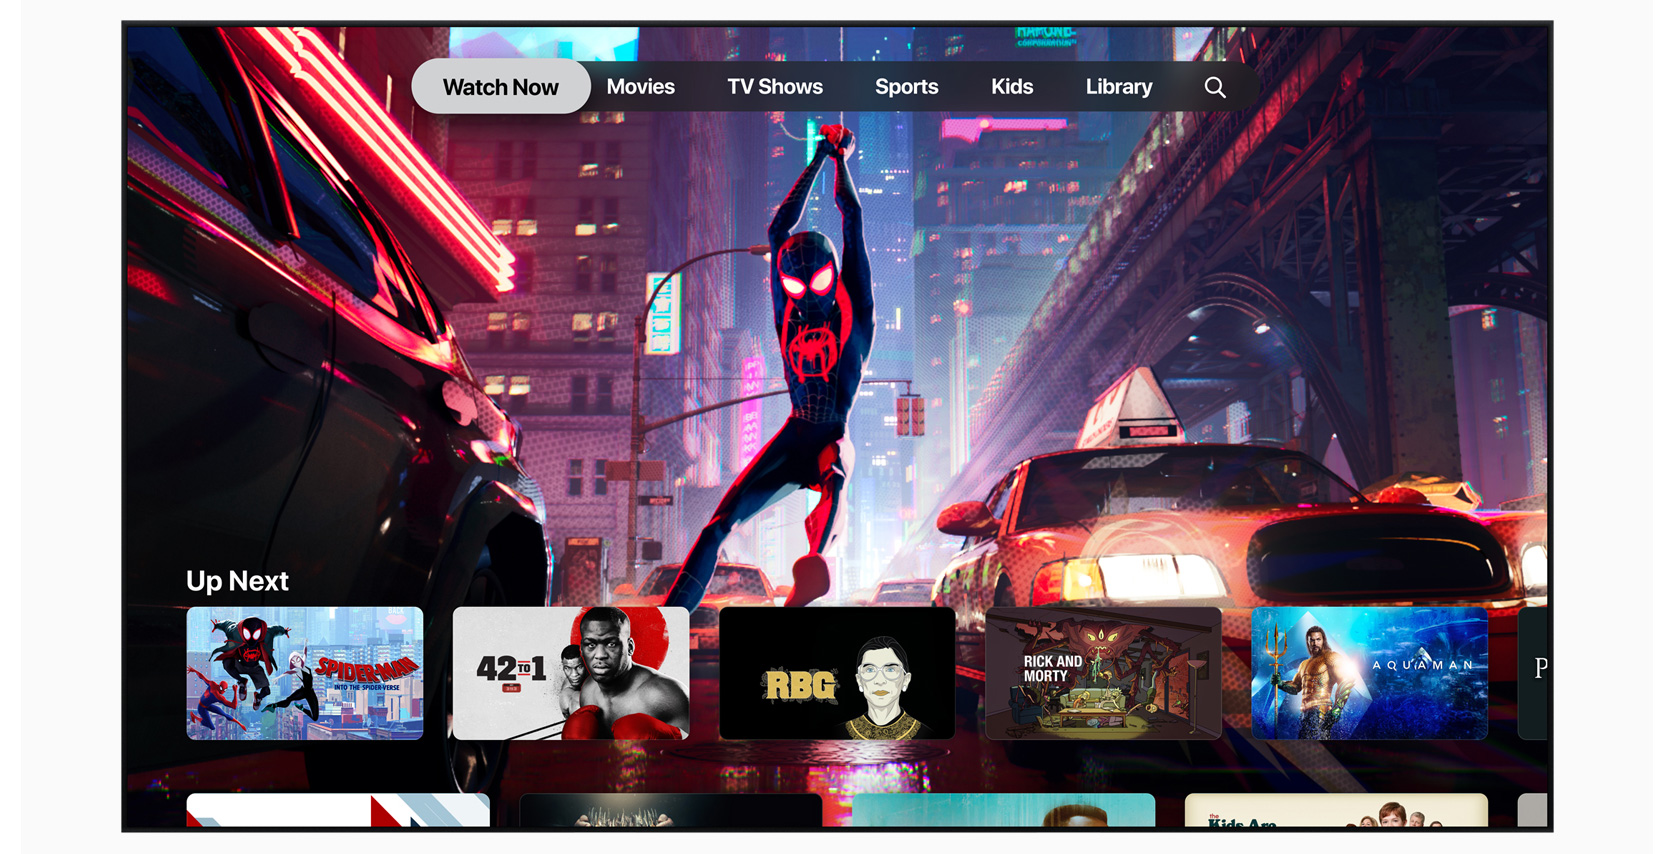 Apple's new Apple TV app is now available in Canada